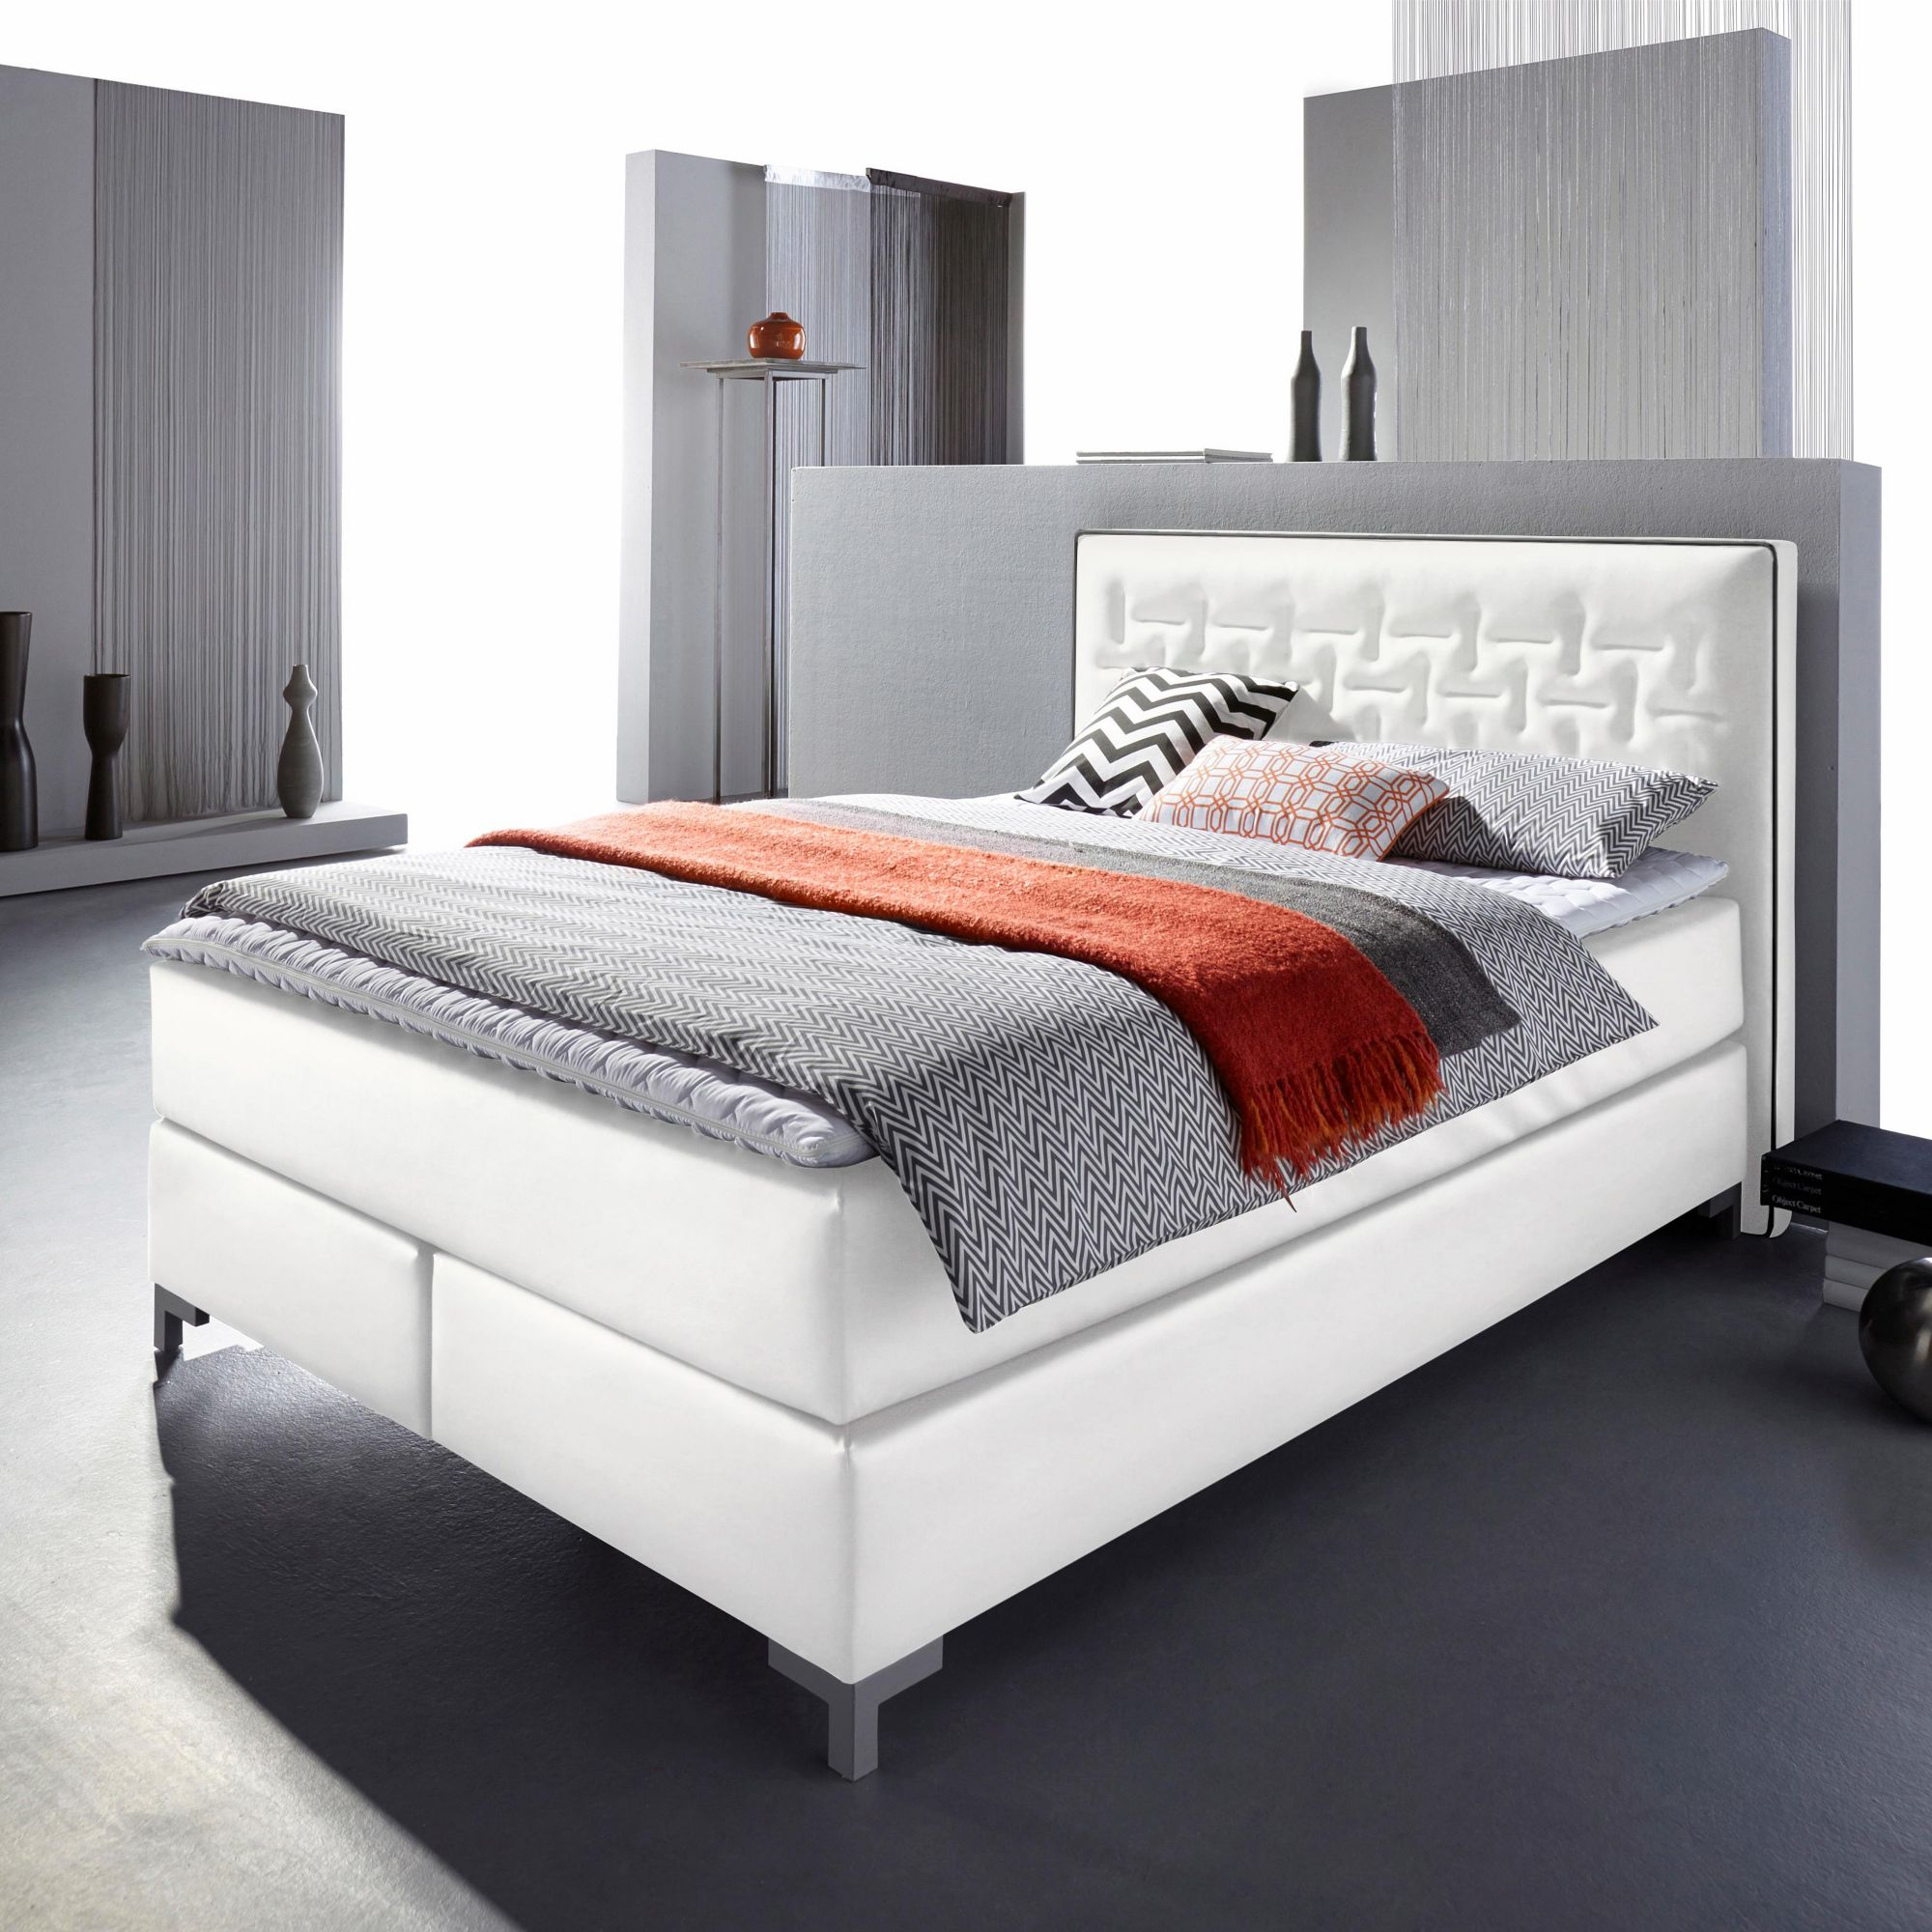 boxspringbett g nstig online kaufen beim schwab versand. Black Bedroom Furniture Sets. Home Design Ideas